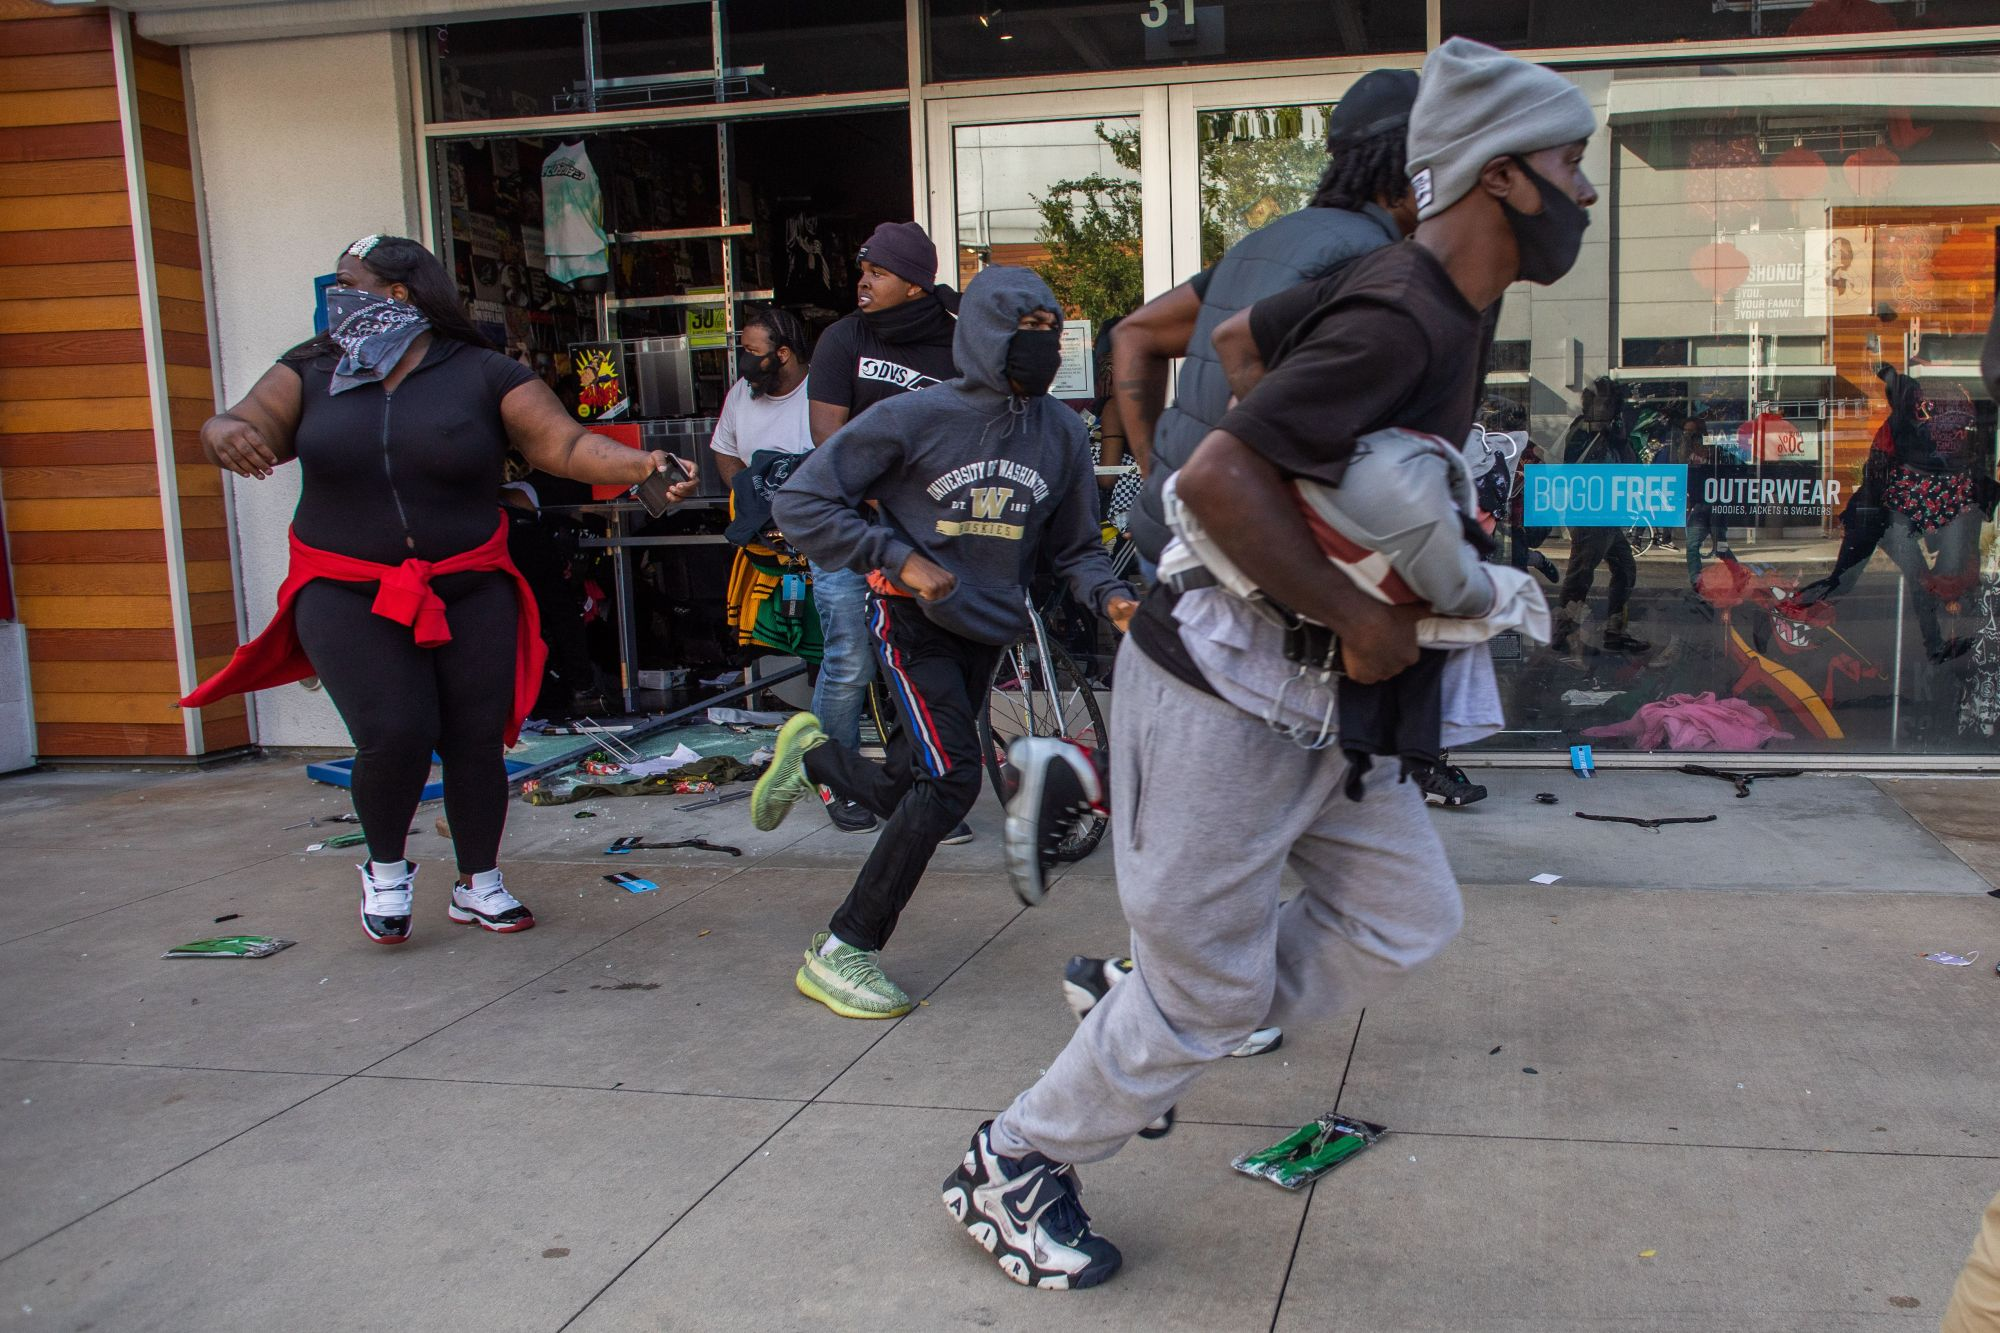 People run with items looted in a clothing store in downtown Long Beach on May 31, 2020 during a protest against the death of George Floyd. (APU GOMES/AFP via Getty Images)